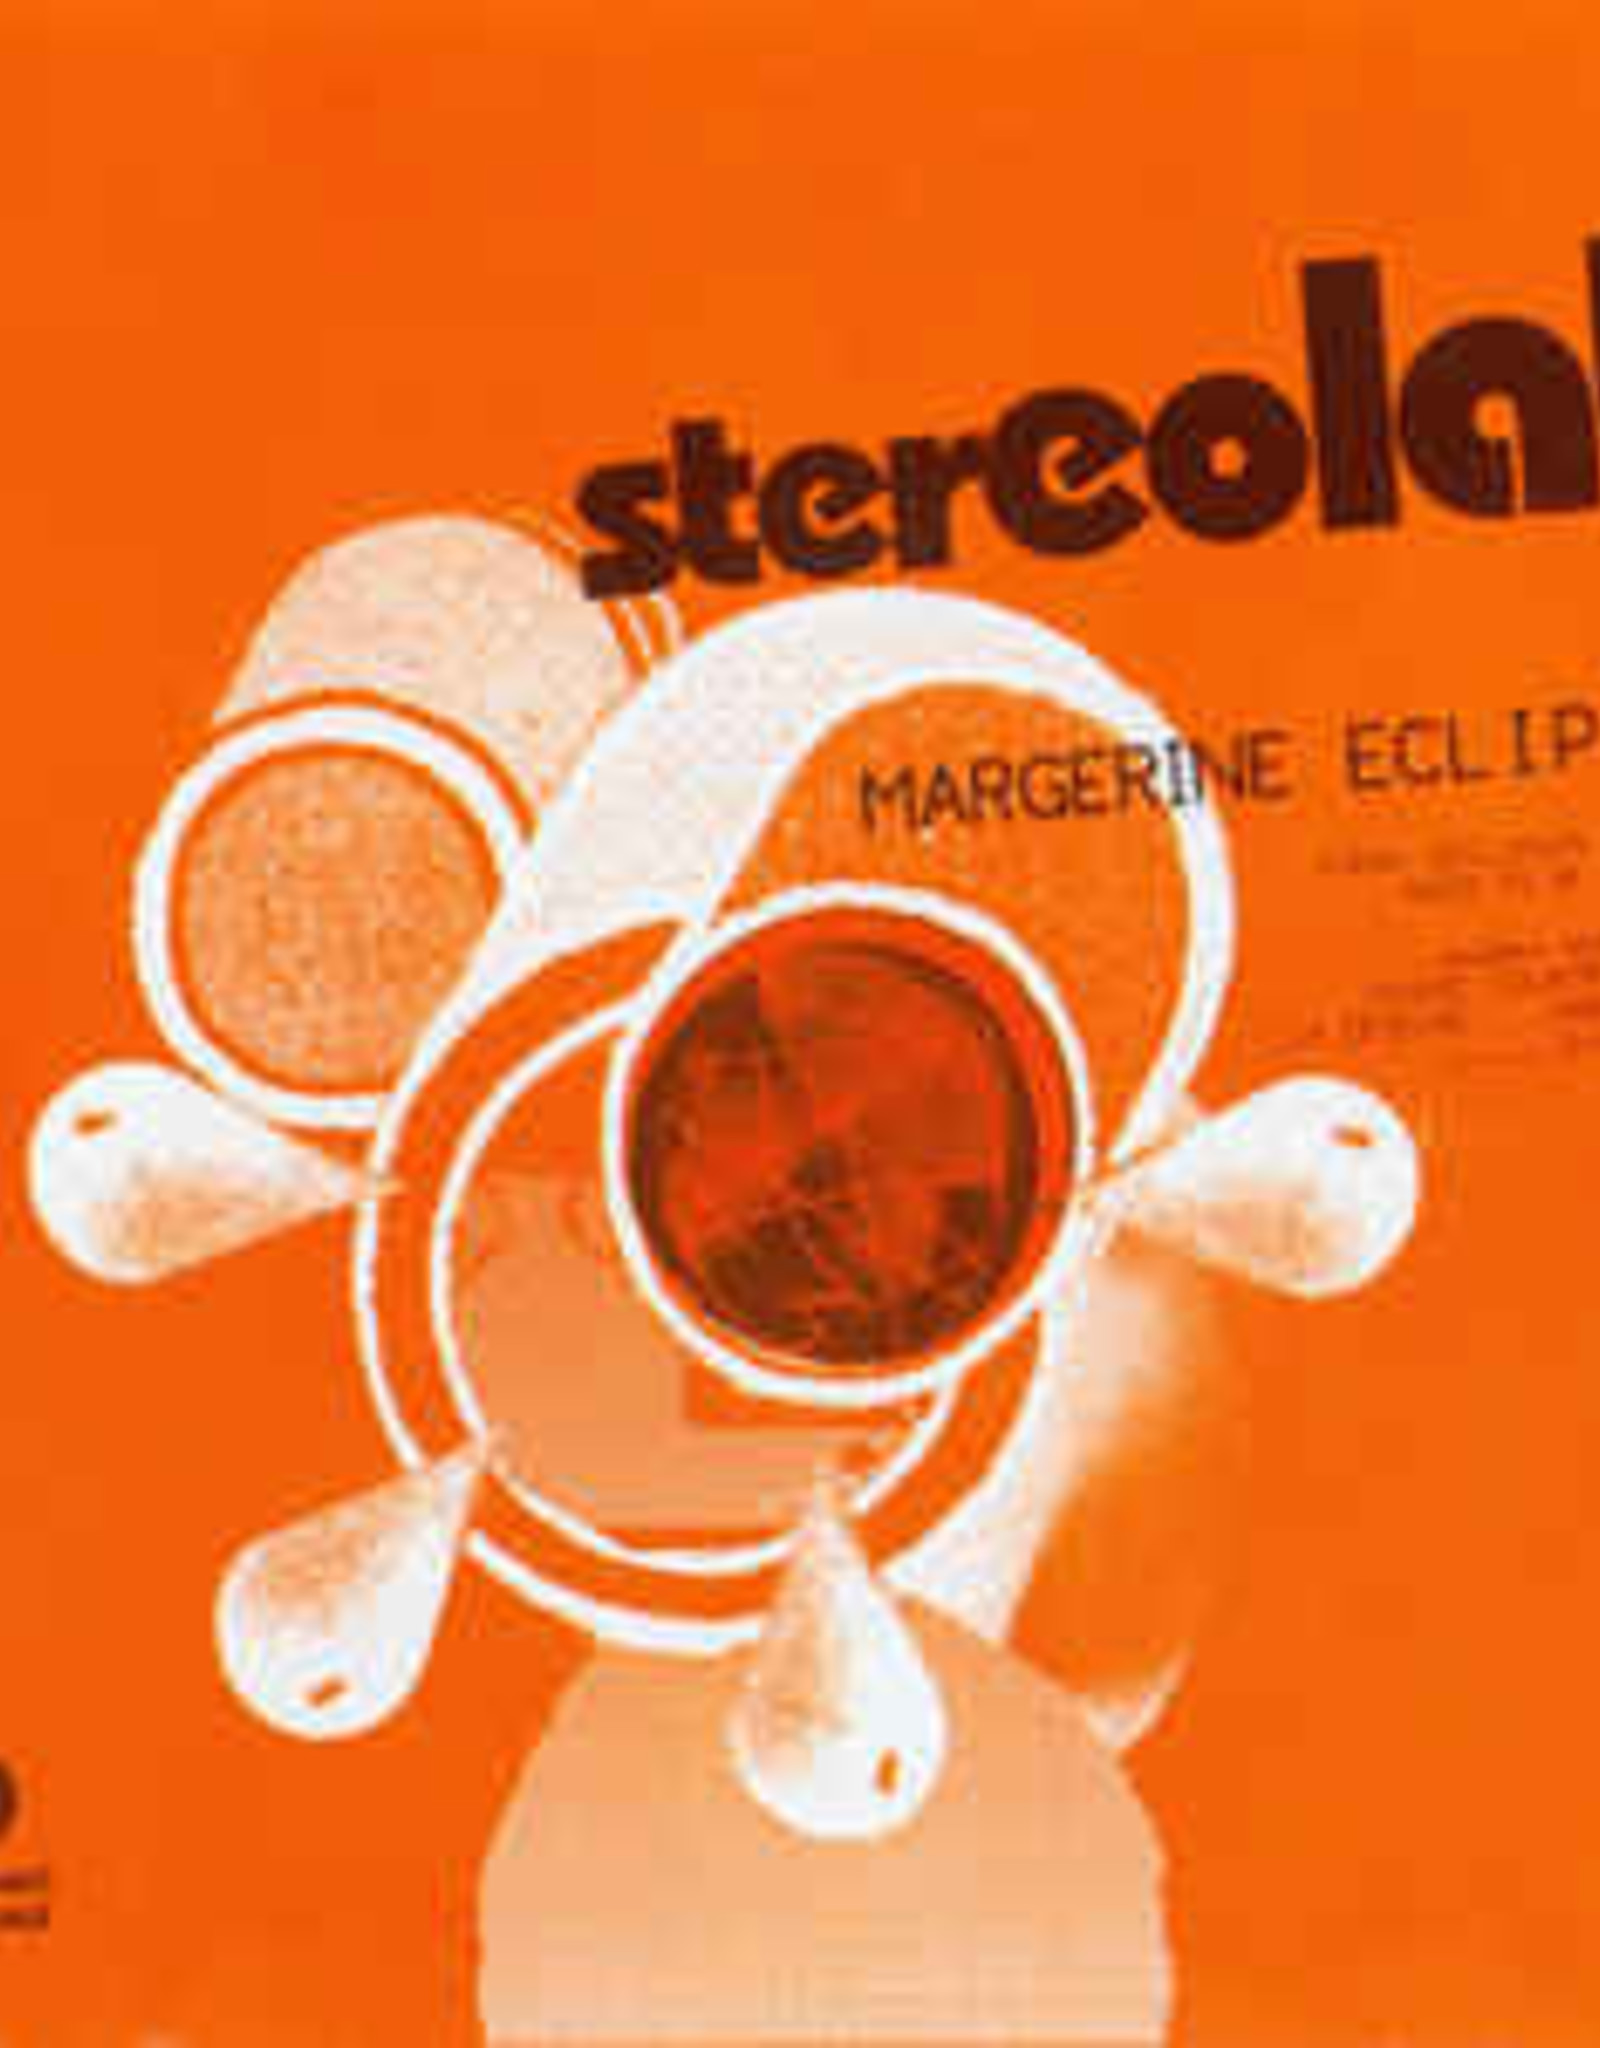 Stereolab - Margerine Eclipse [Expanded Edition] (Limited Clear Vinyl)